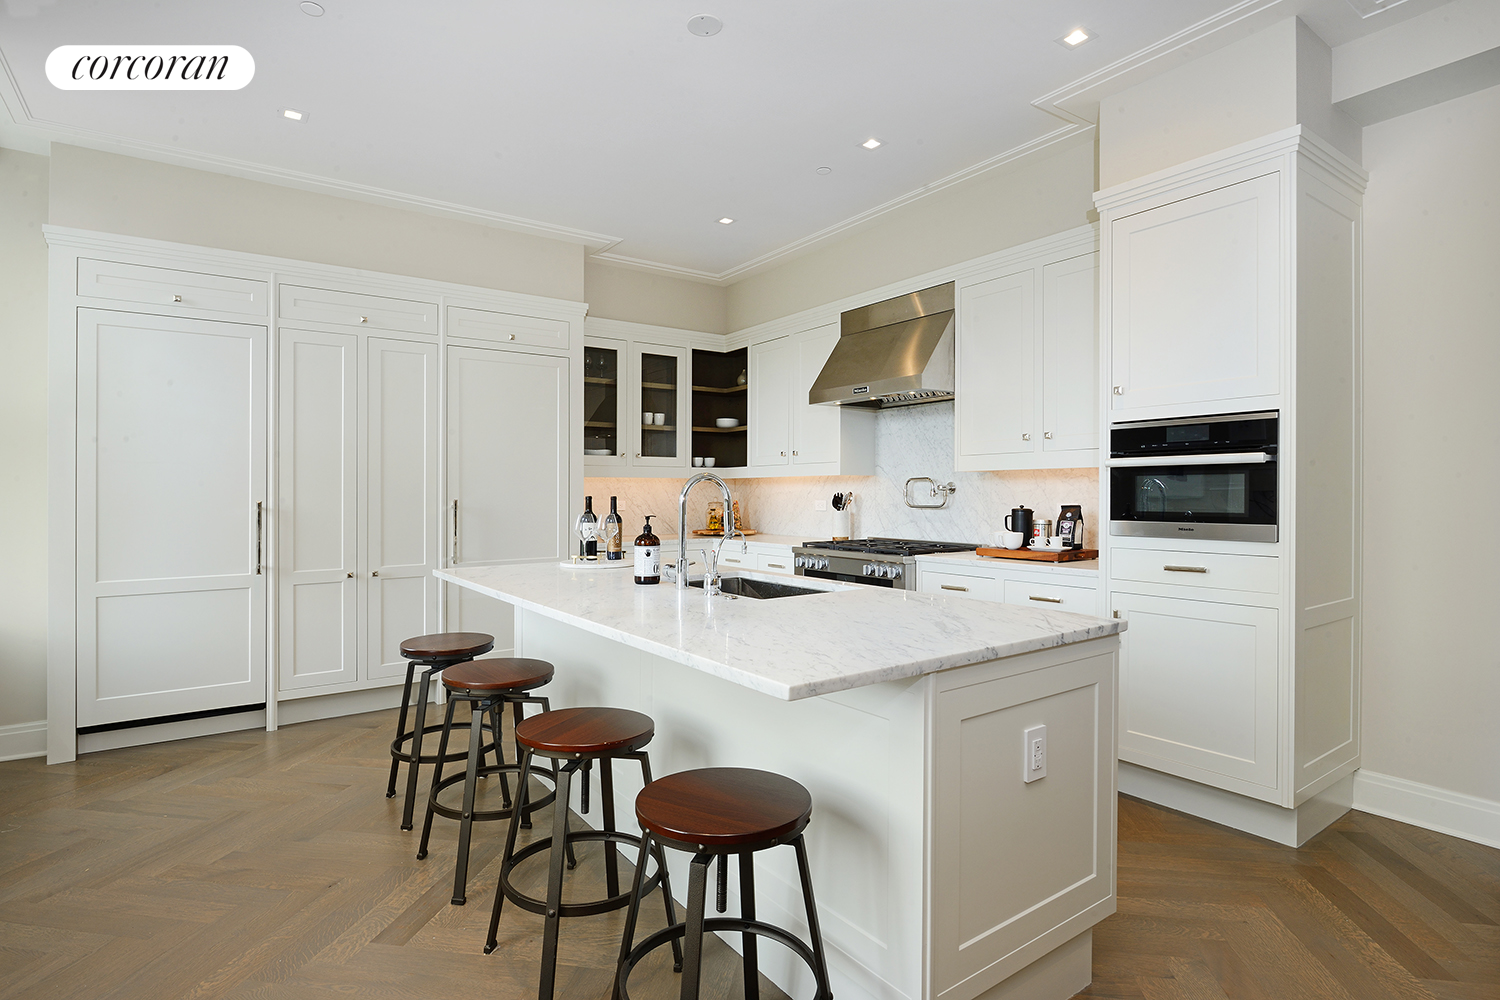 101 West 78th Street, 8A, Kitchen